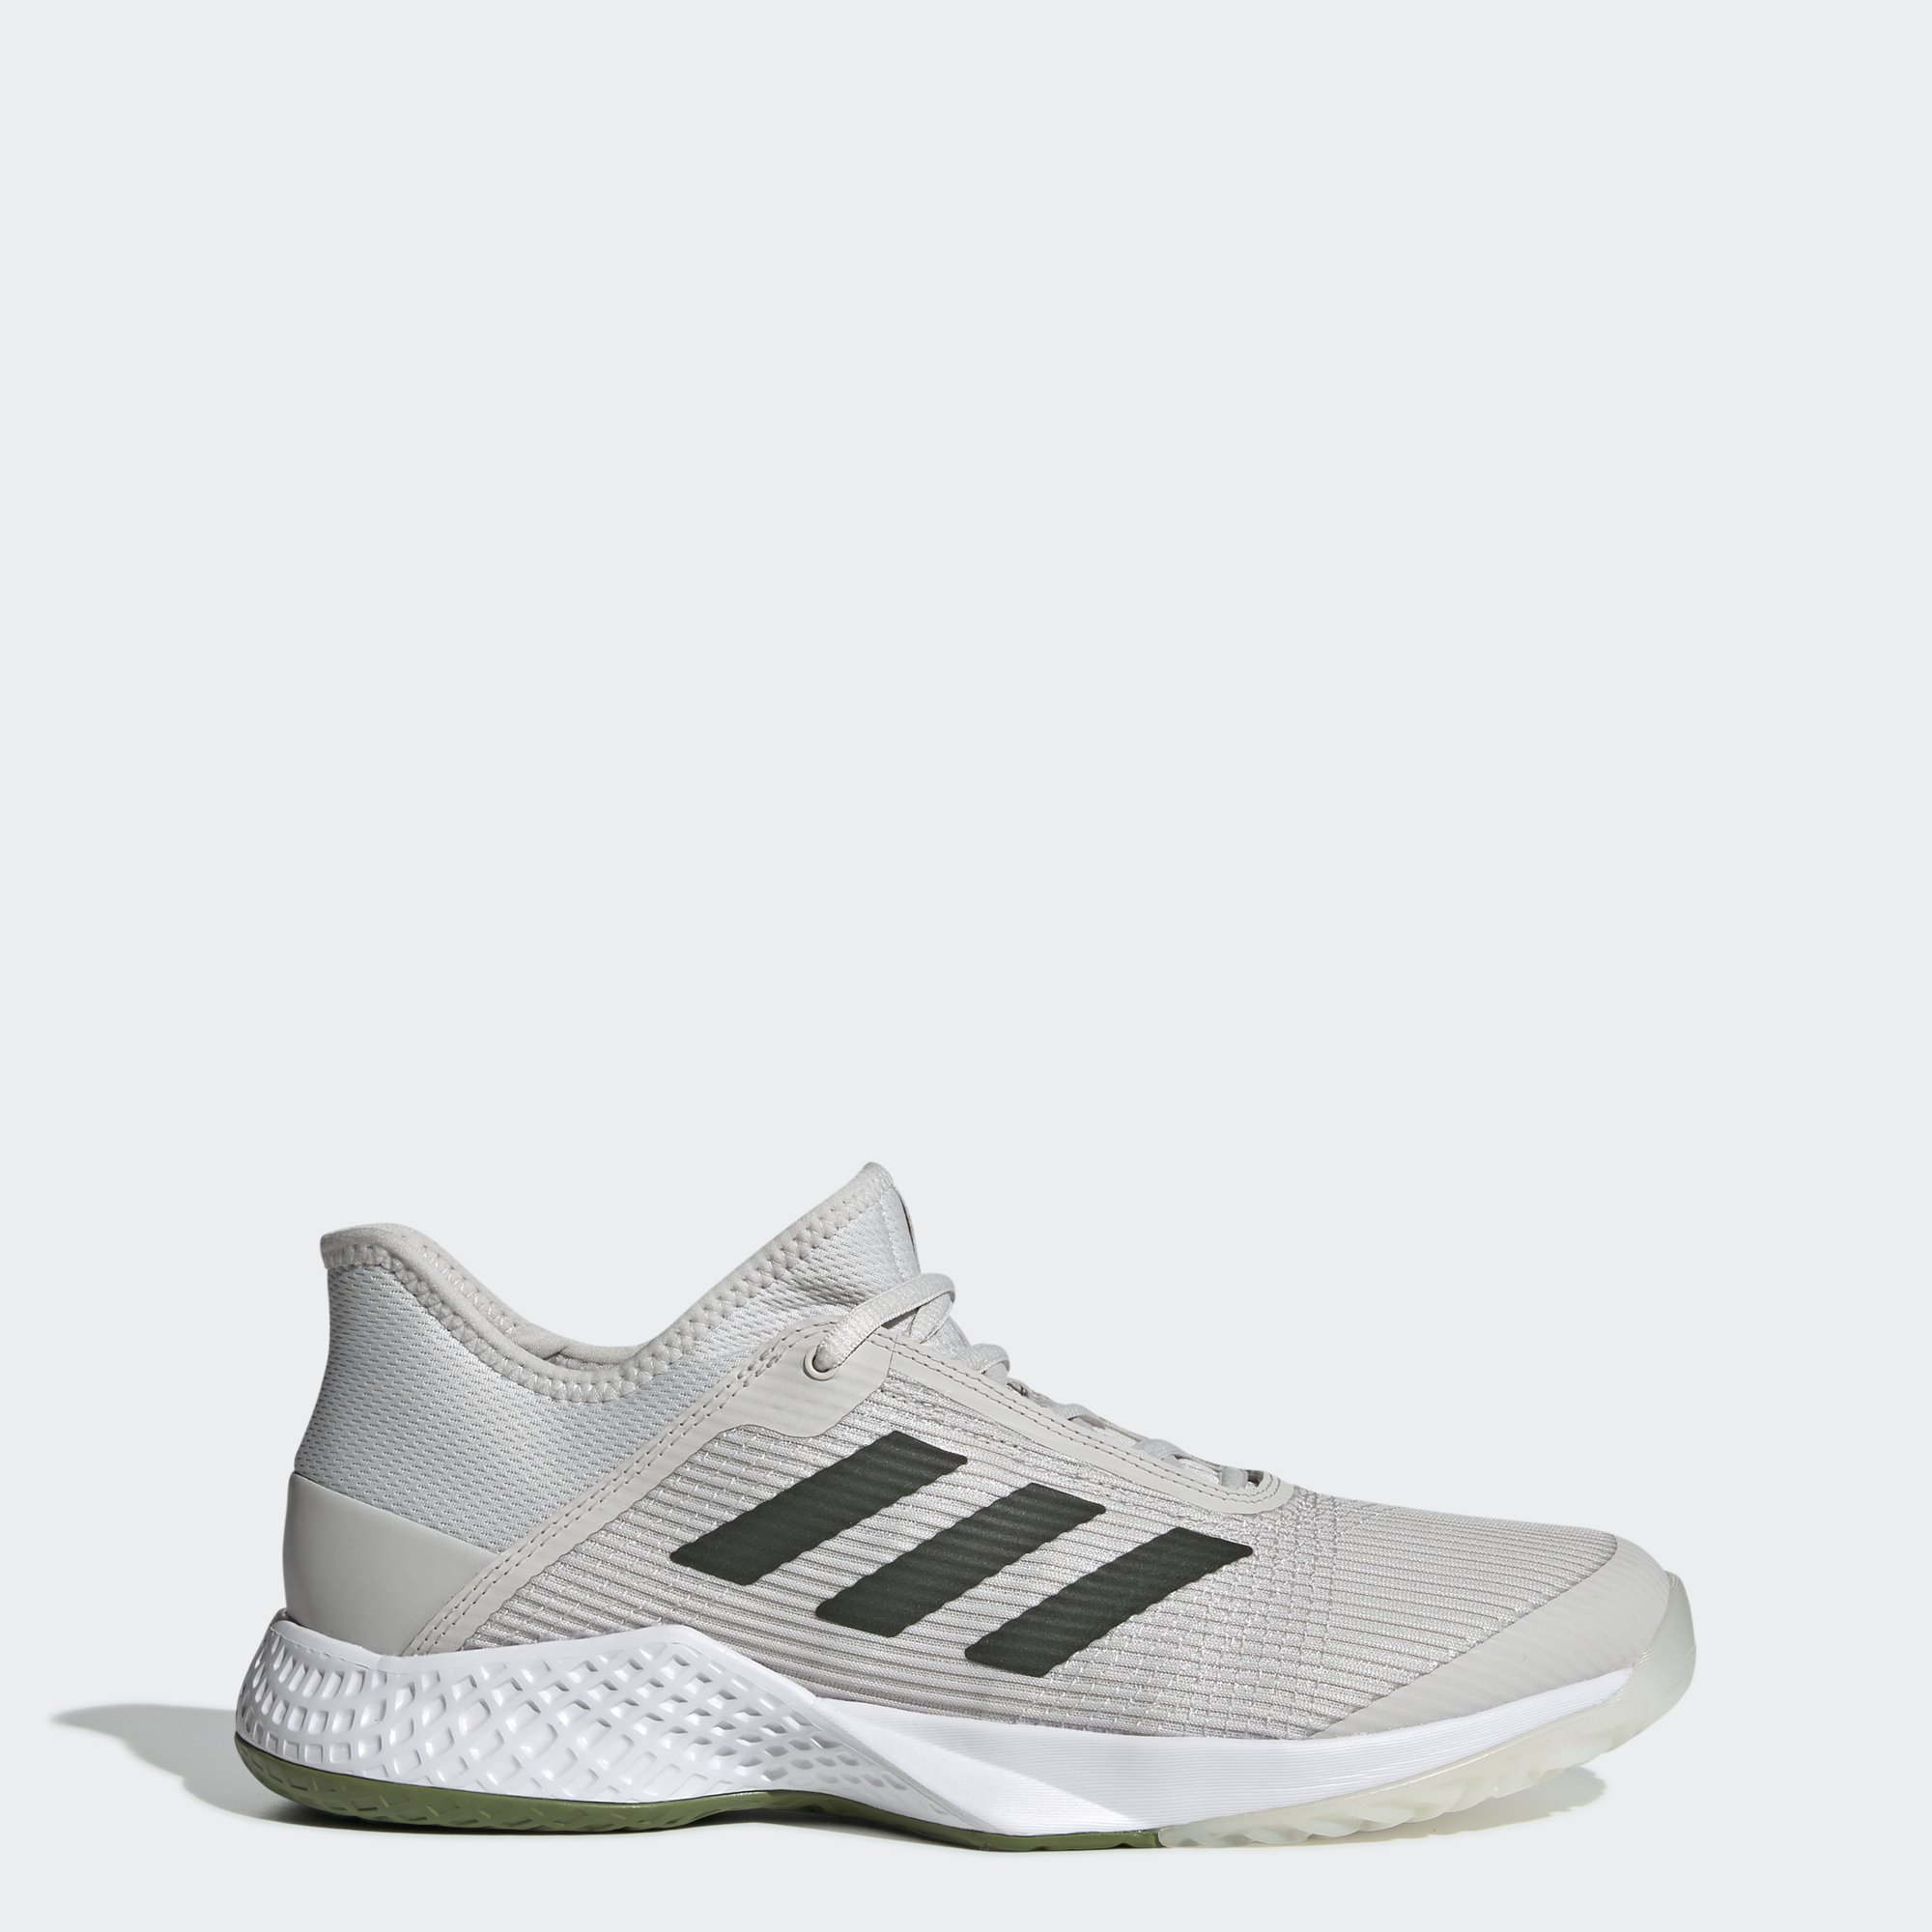 adidas Men's Adizero Club Tennis Shoe